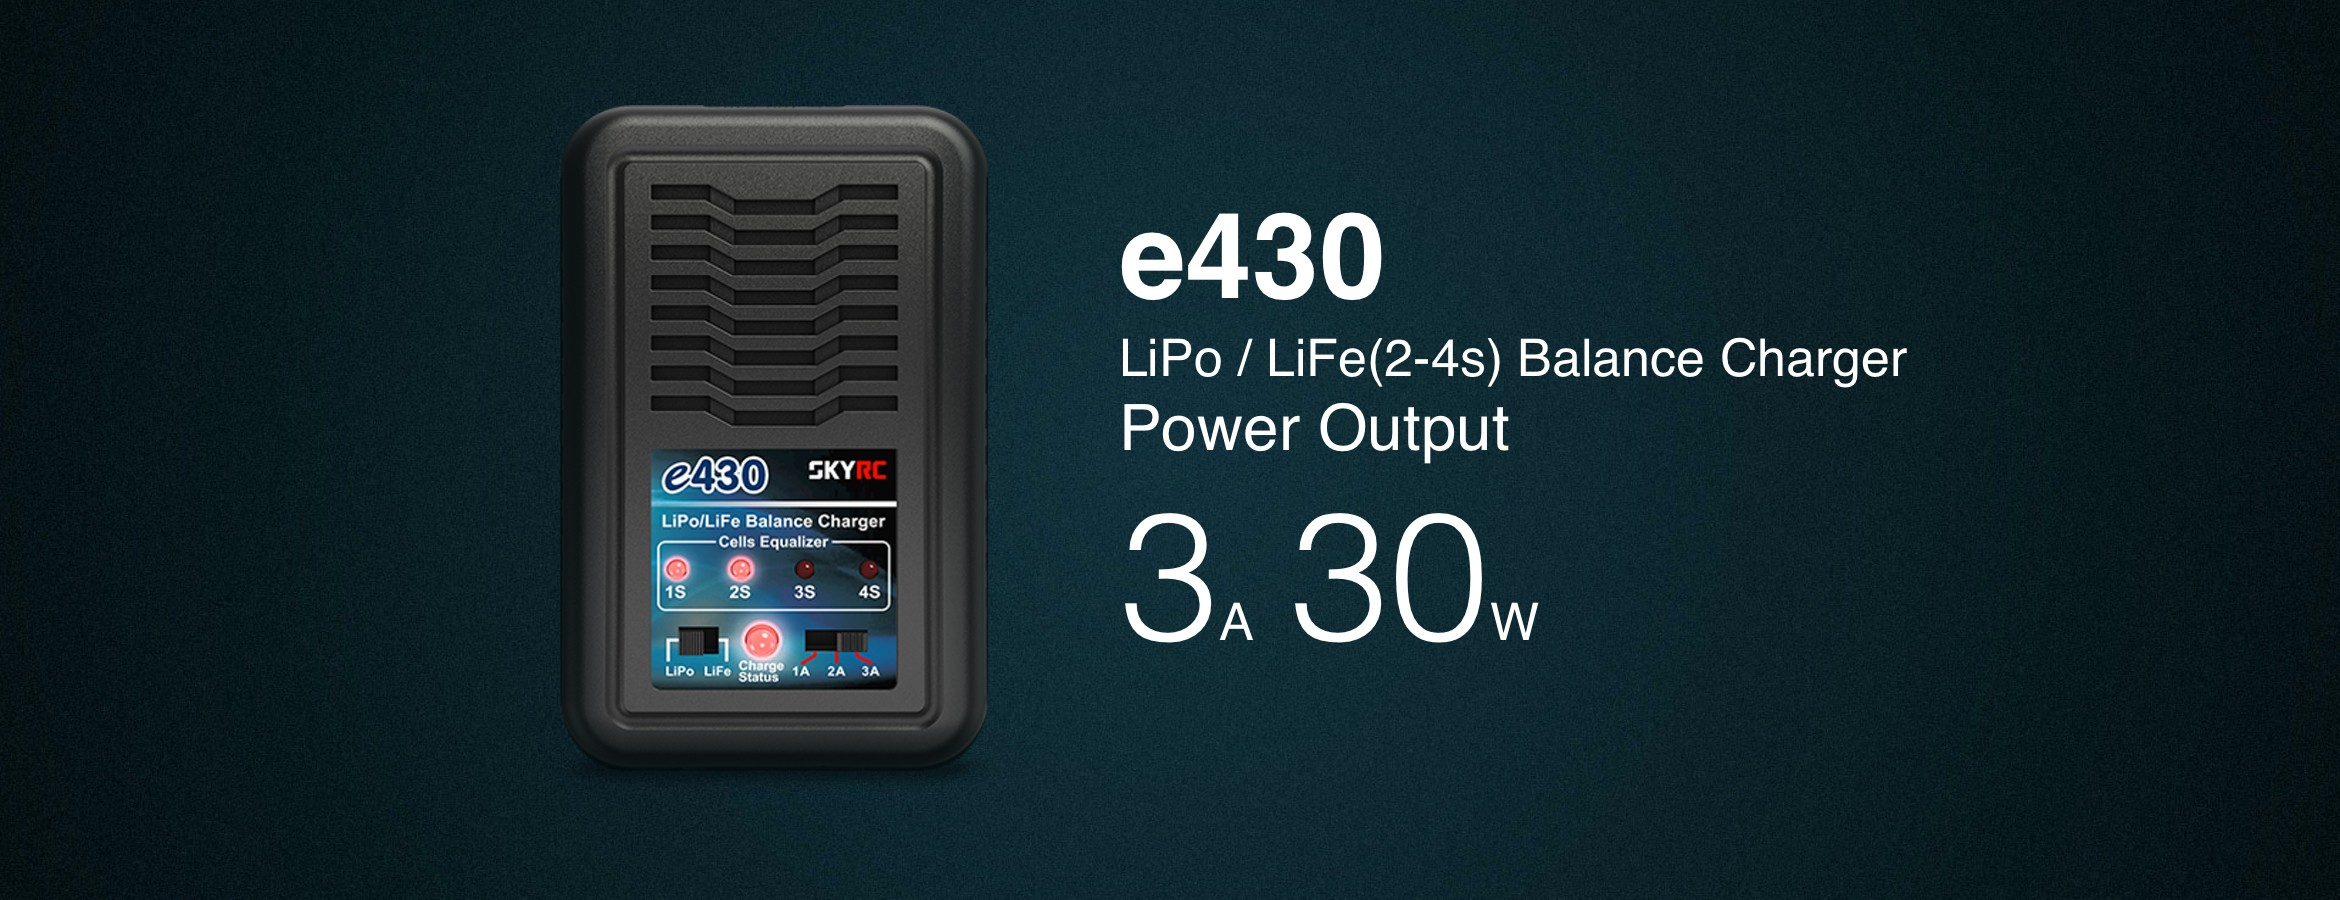 E430 Charger